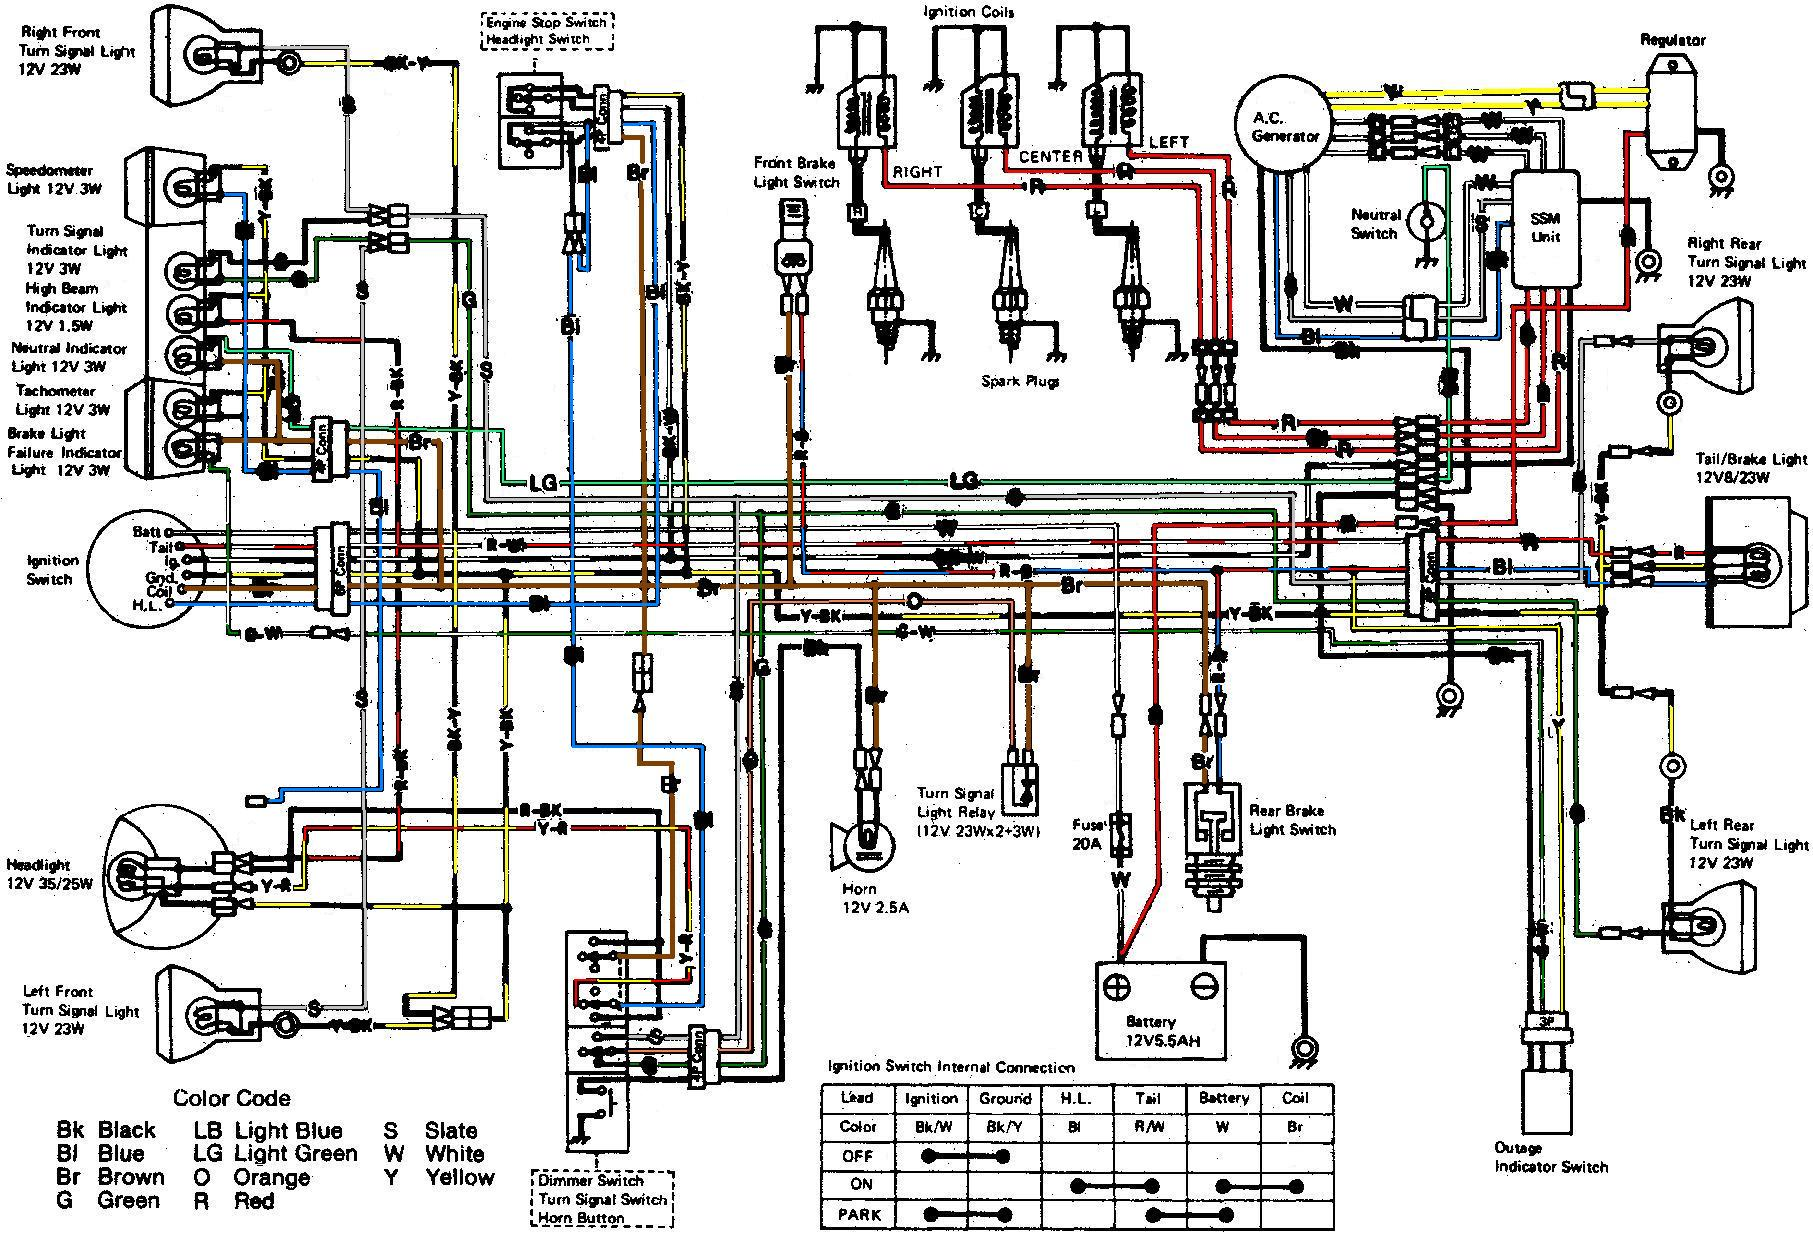 Kawasaki Mule 3010 Wiring Diagram from kawatriple.com